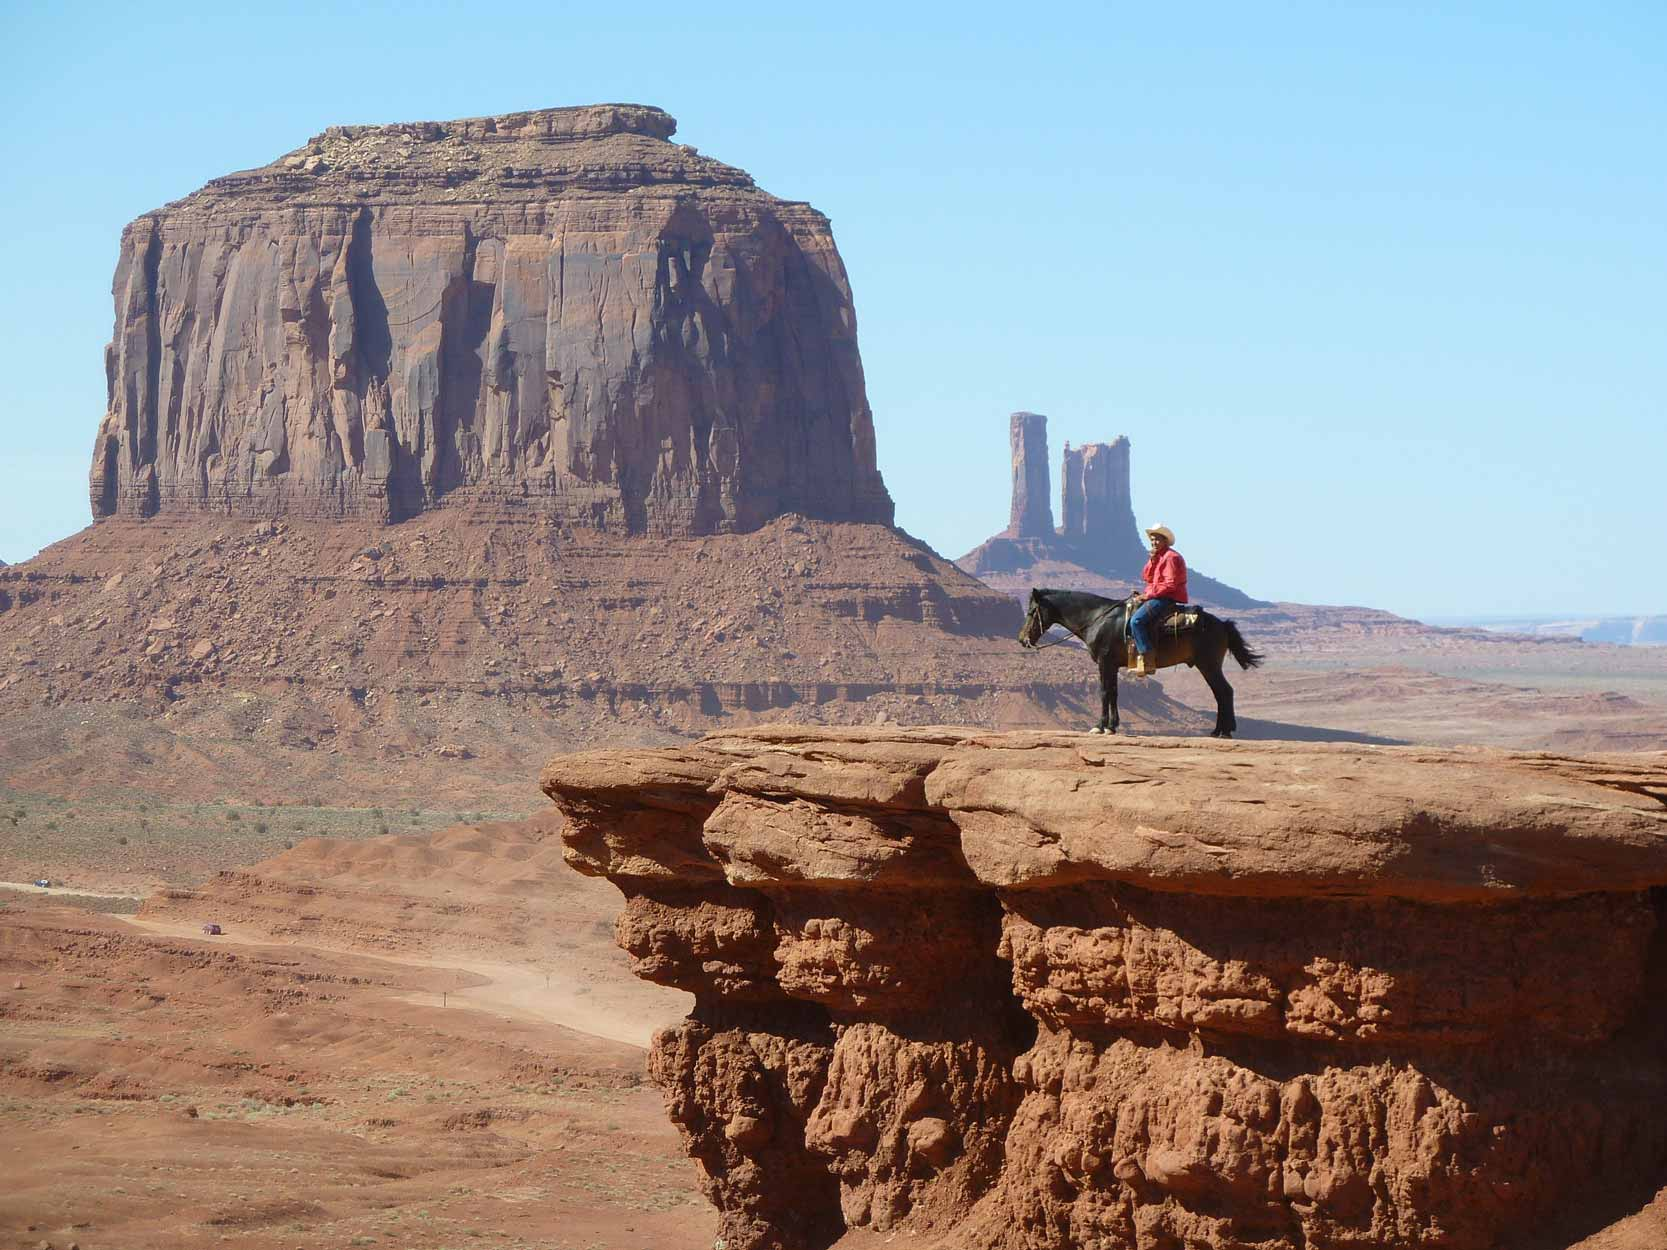 A person with a wide-brim had sits astride a horse on a cloudless day by a dusty canyon.